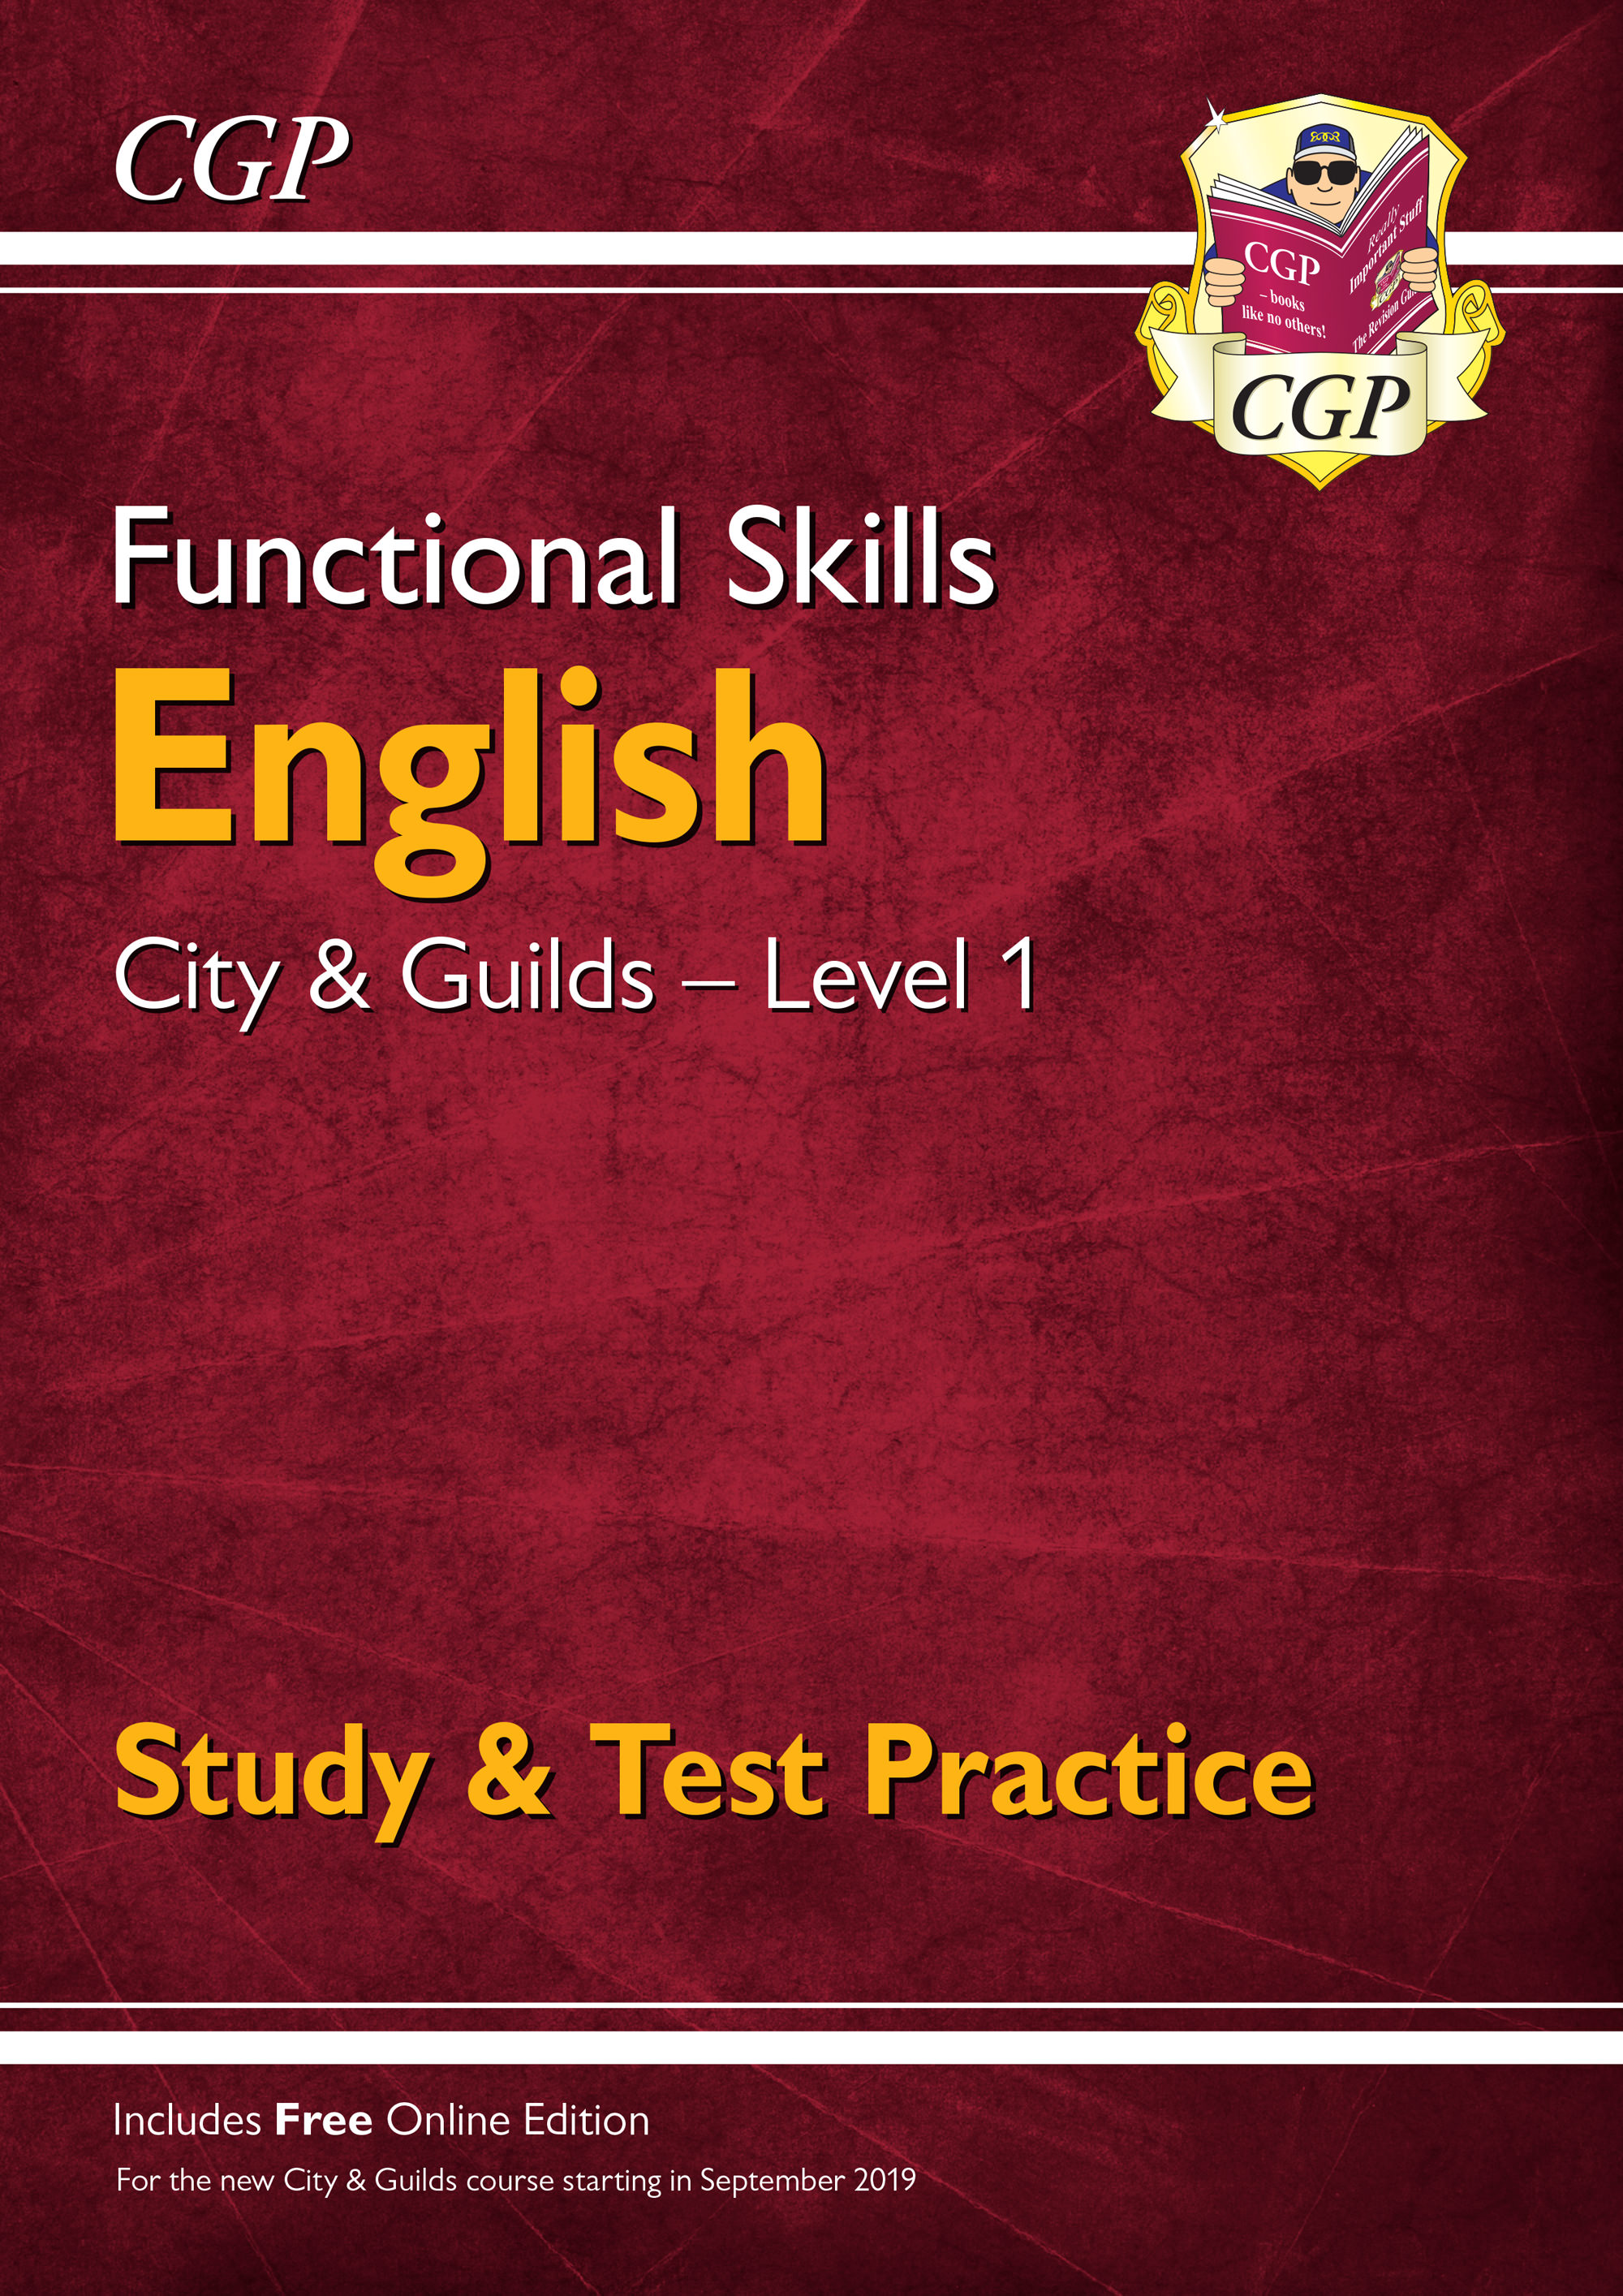 E1CGSRA1 - New Functional Skills English: City & Guilds Level 1 - Study & Test Practice (for 2019 &